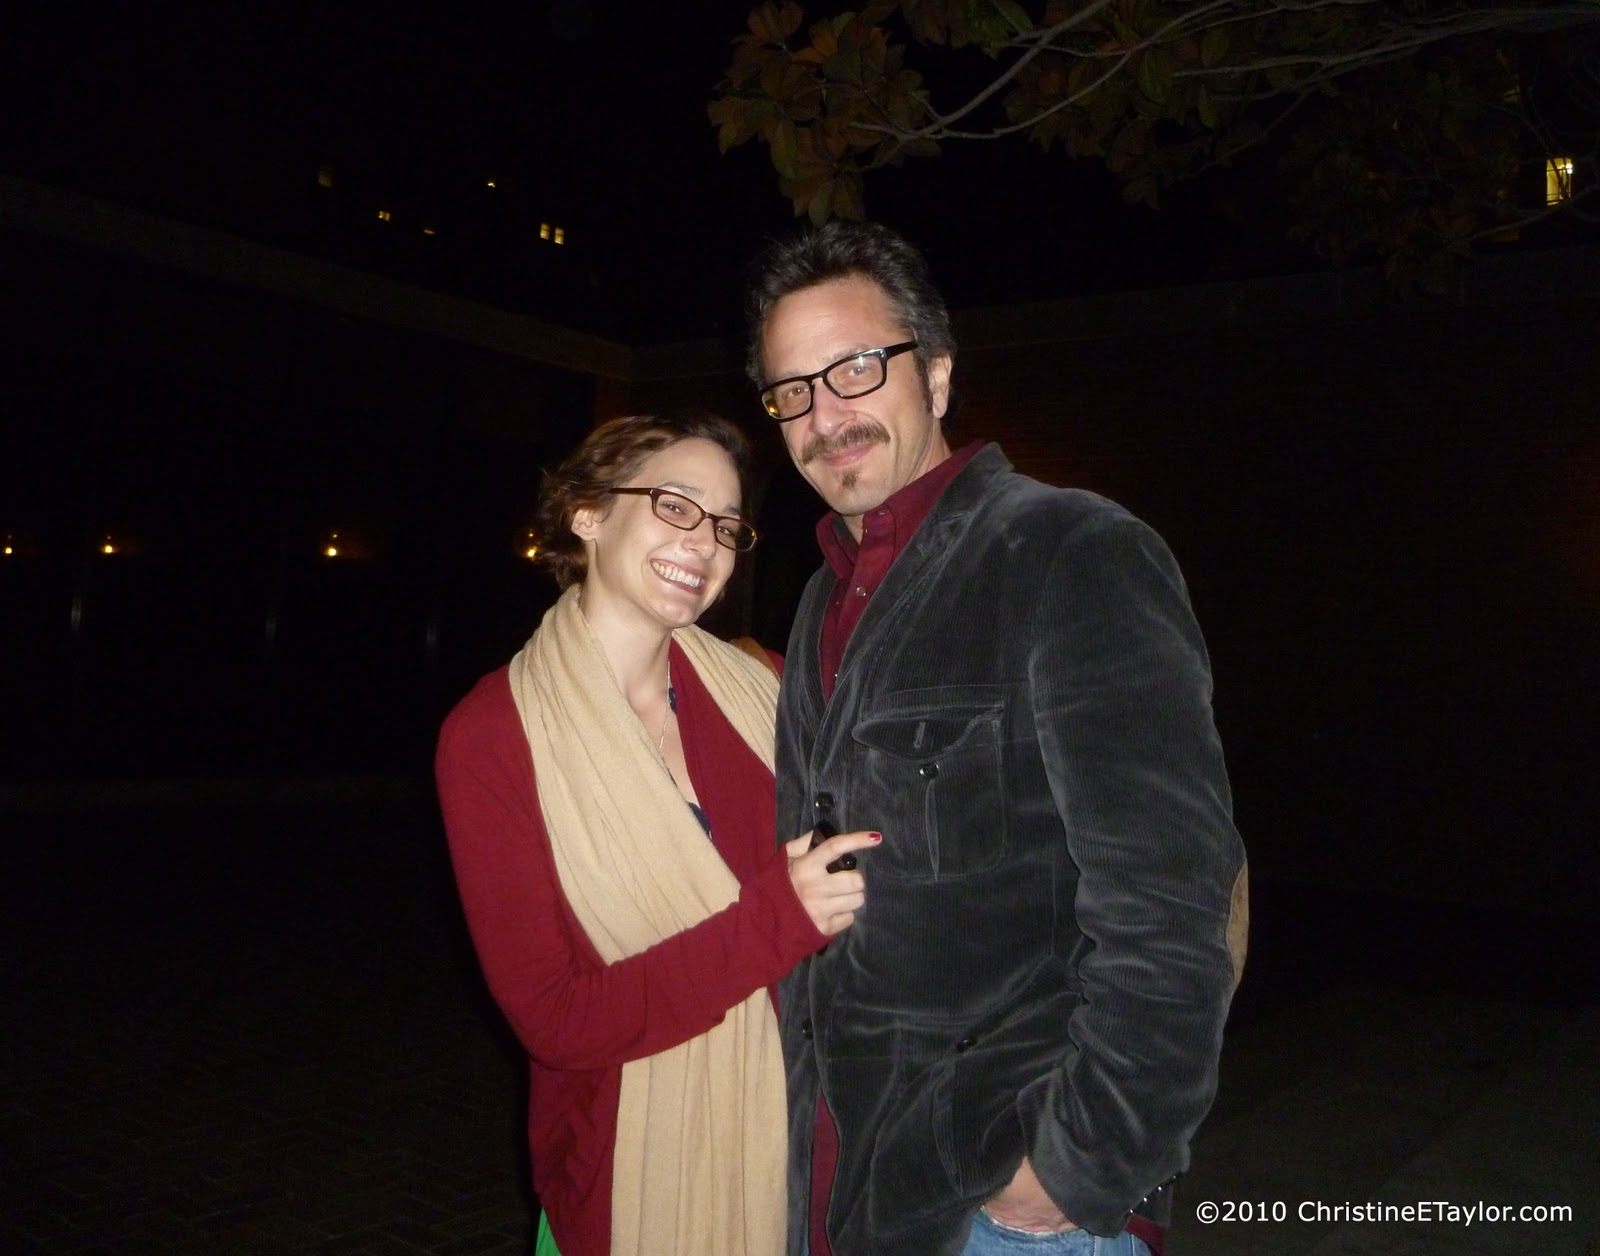 Marc Maron Proposes Girlfriend Gets Engaged And Split Up His